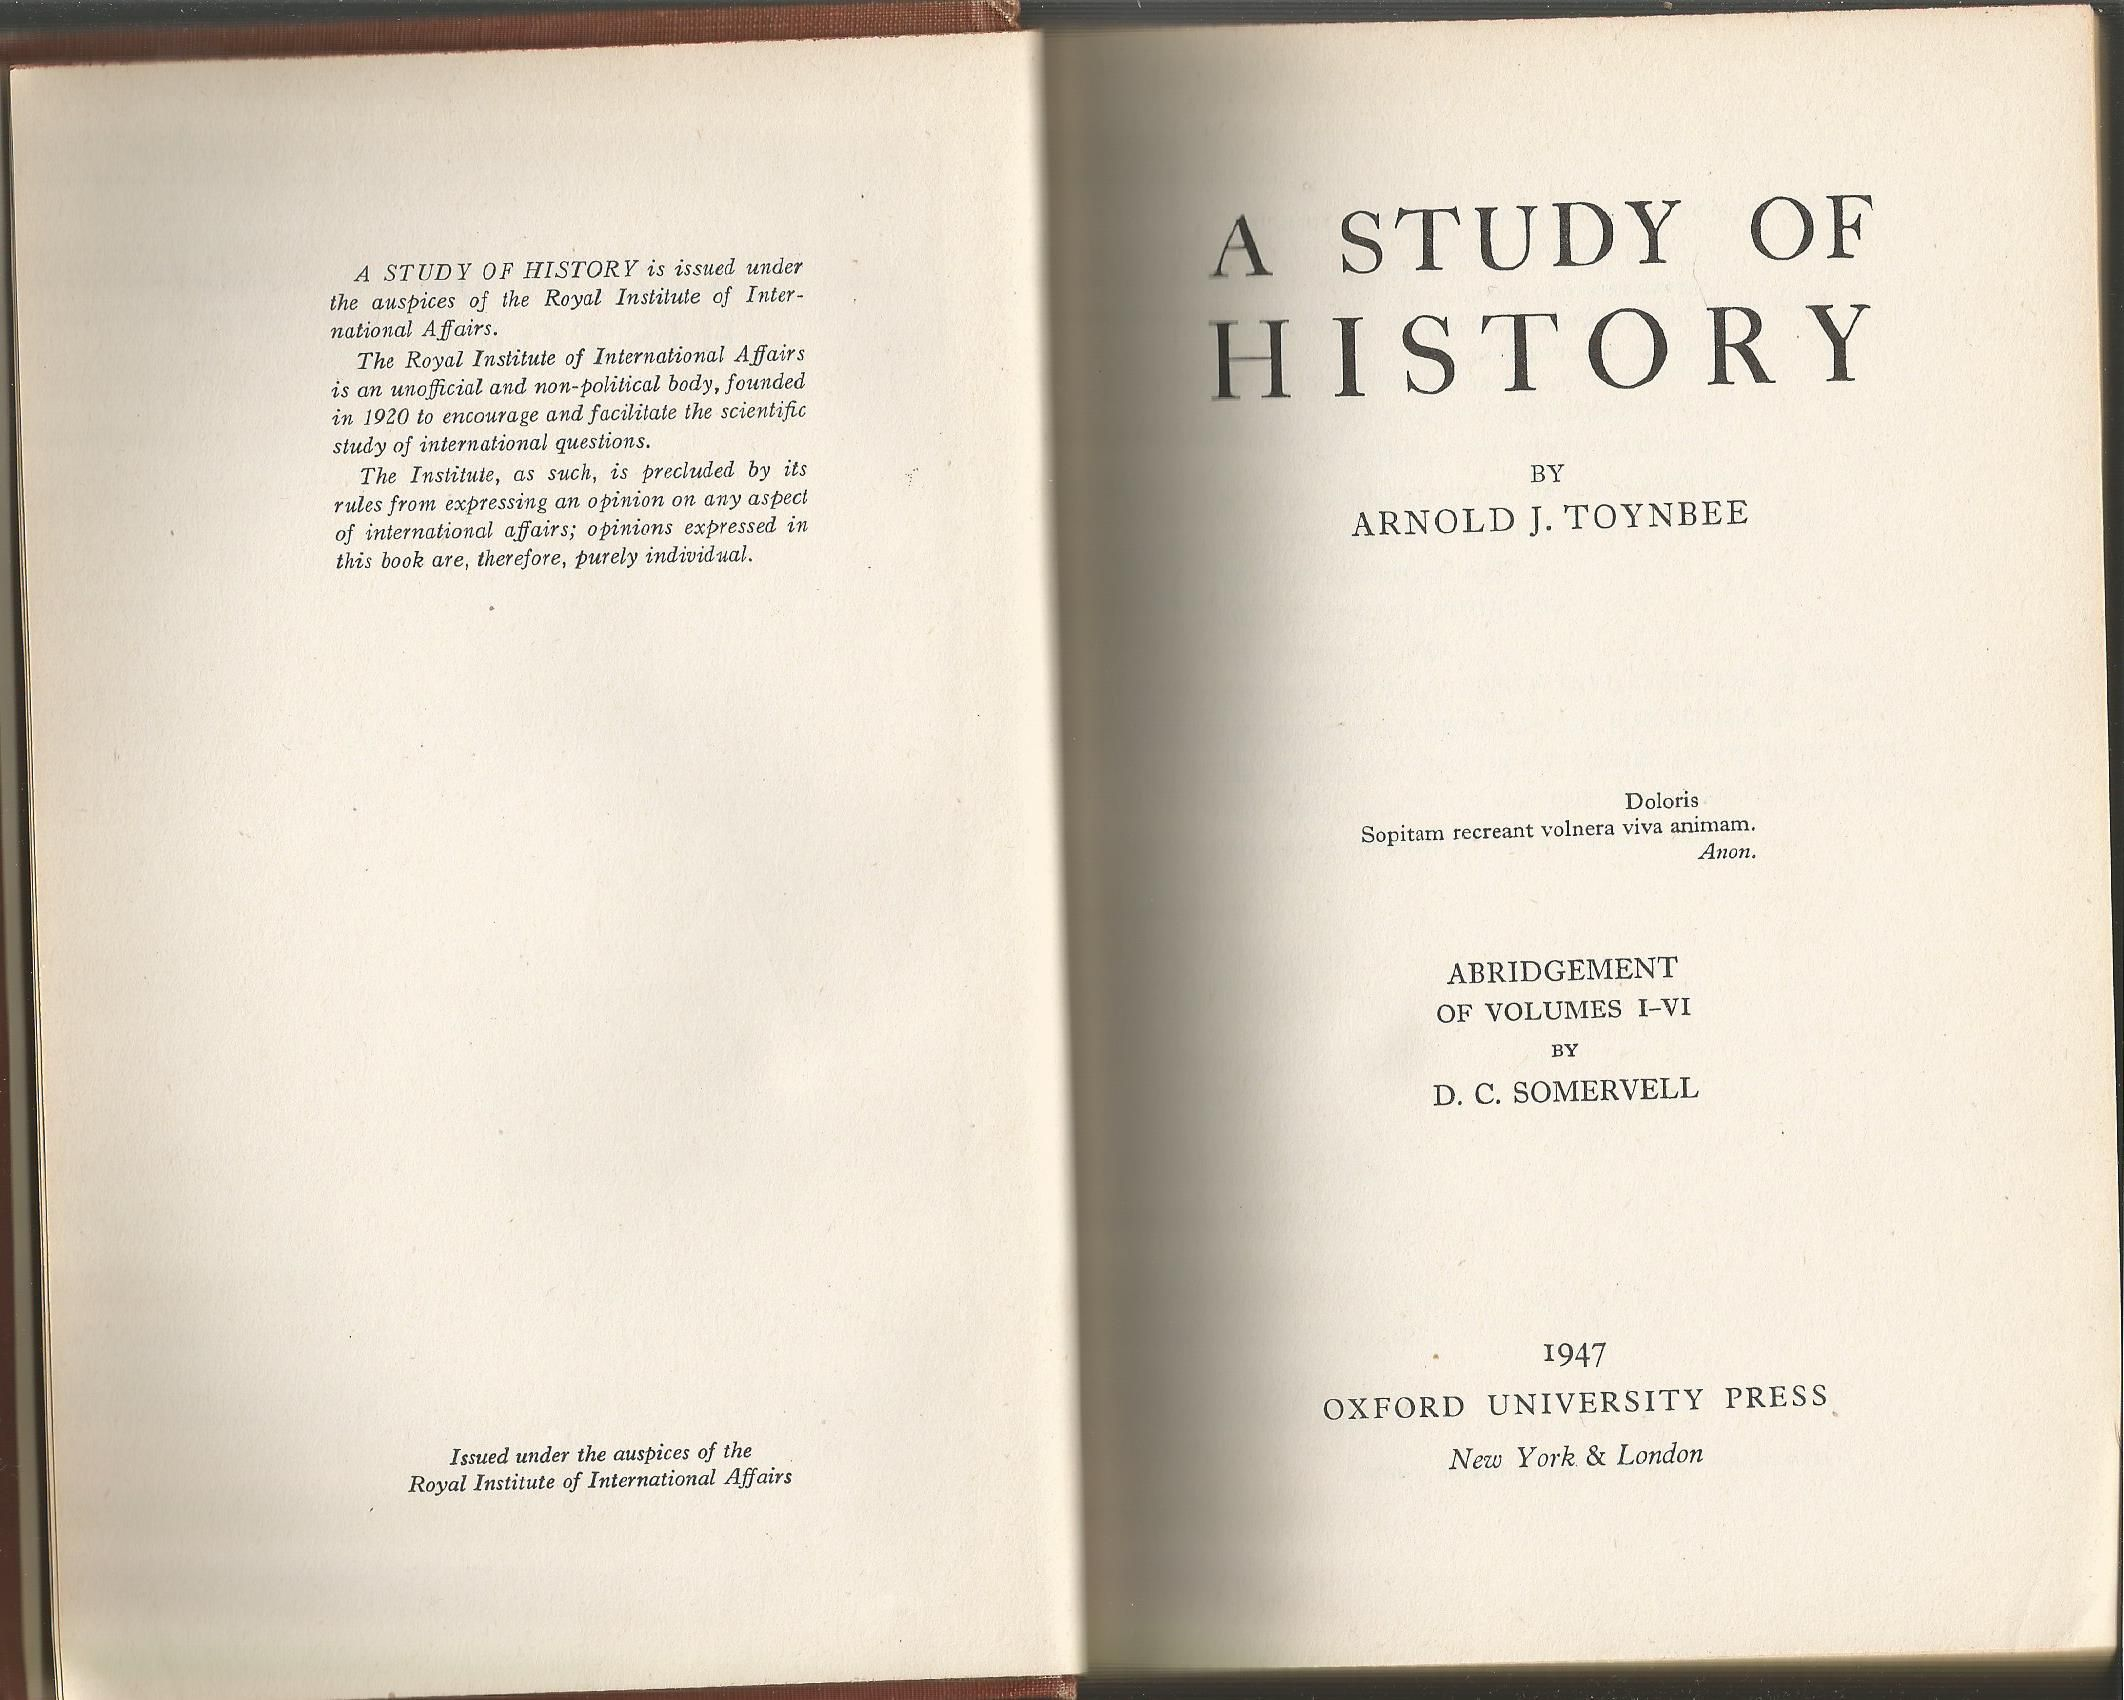 A study of history. Abridgement of ... - Internet Archive